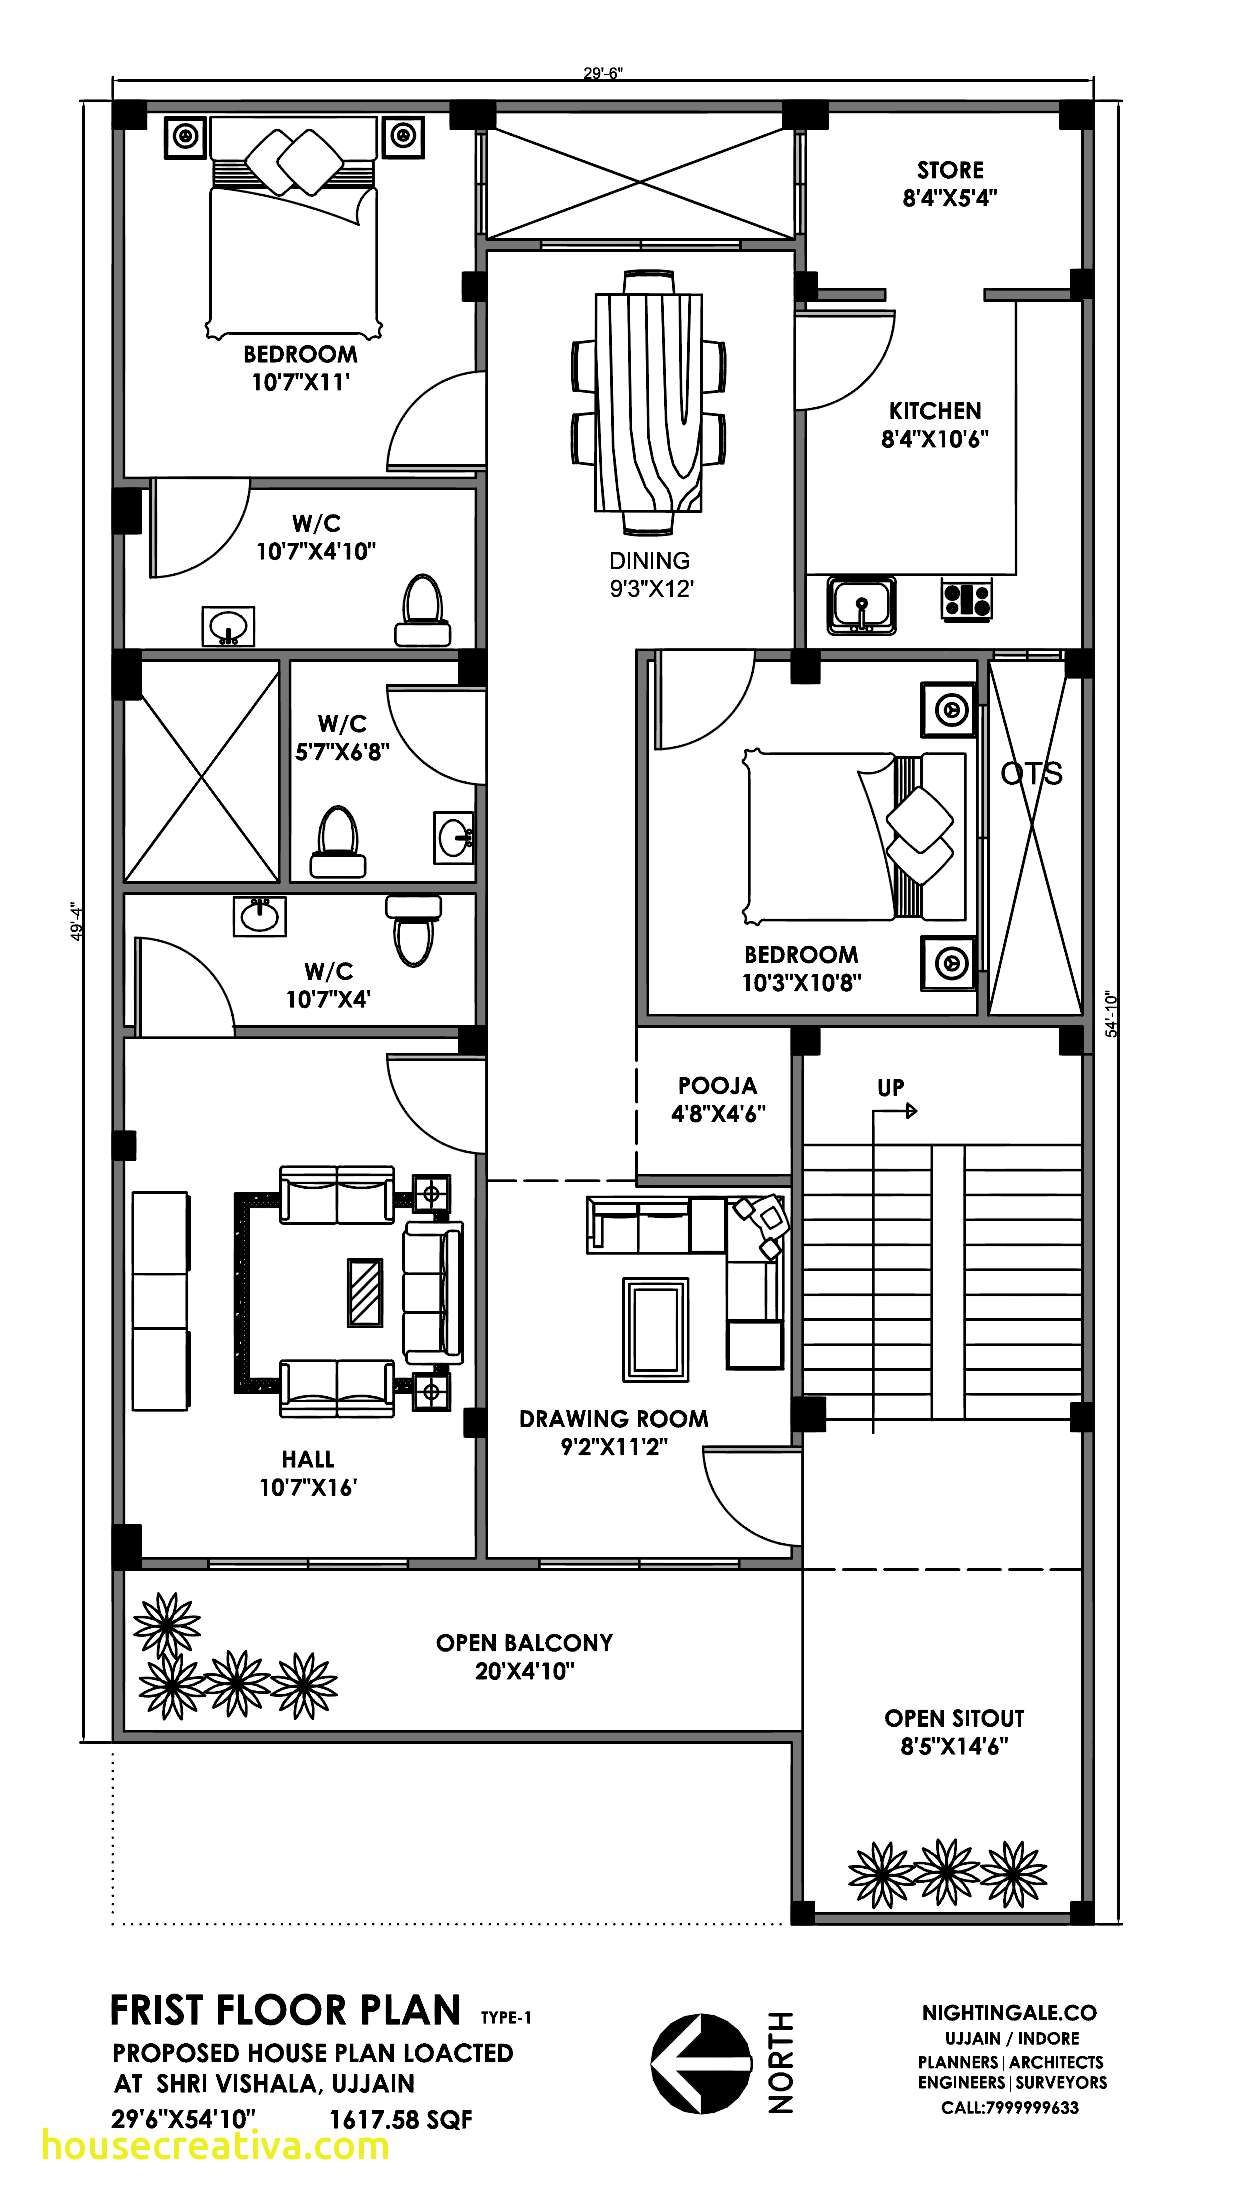 30x50 3bhk House Plan 1500sqft 20x30 House Plans 30x50 House Plans 40x60 House Plans